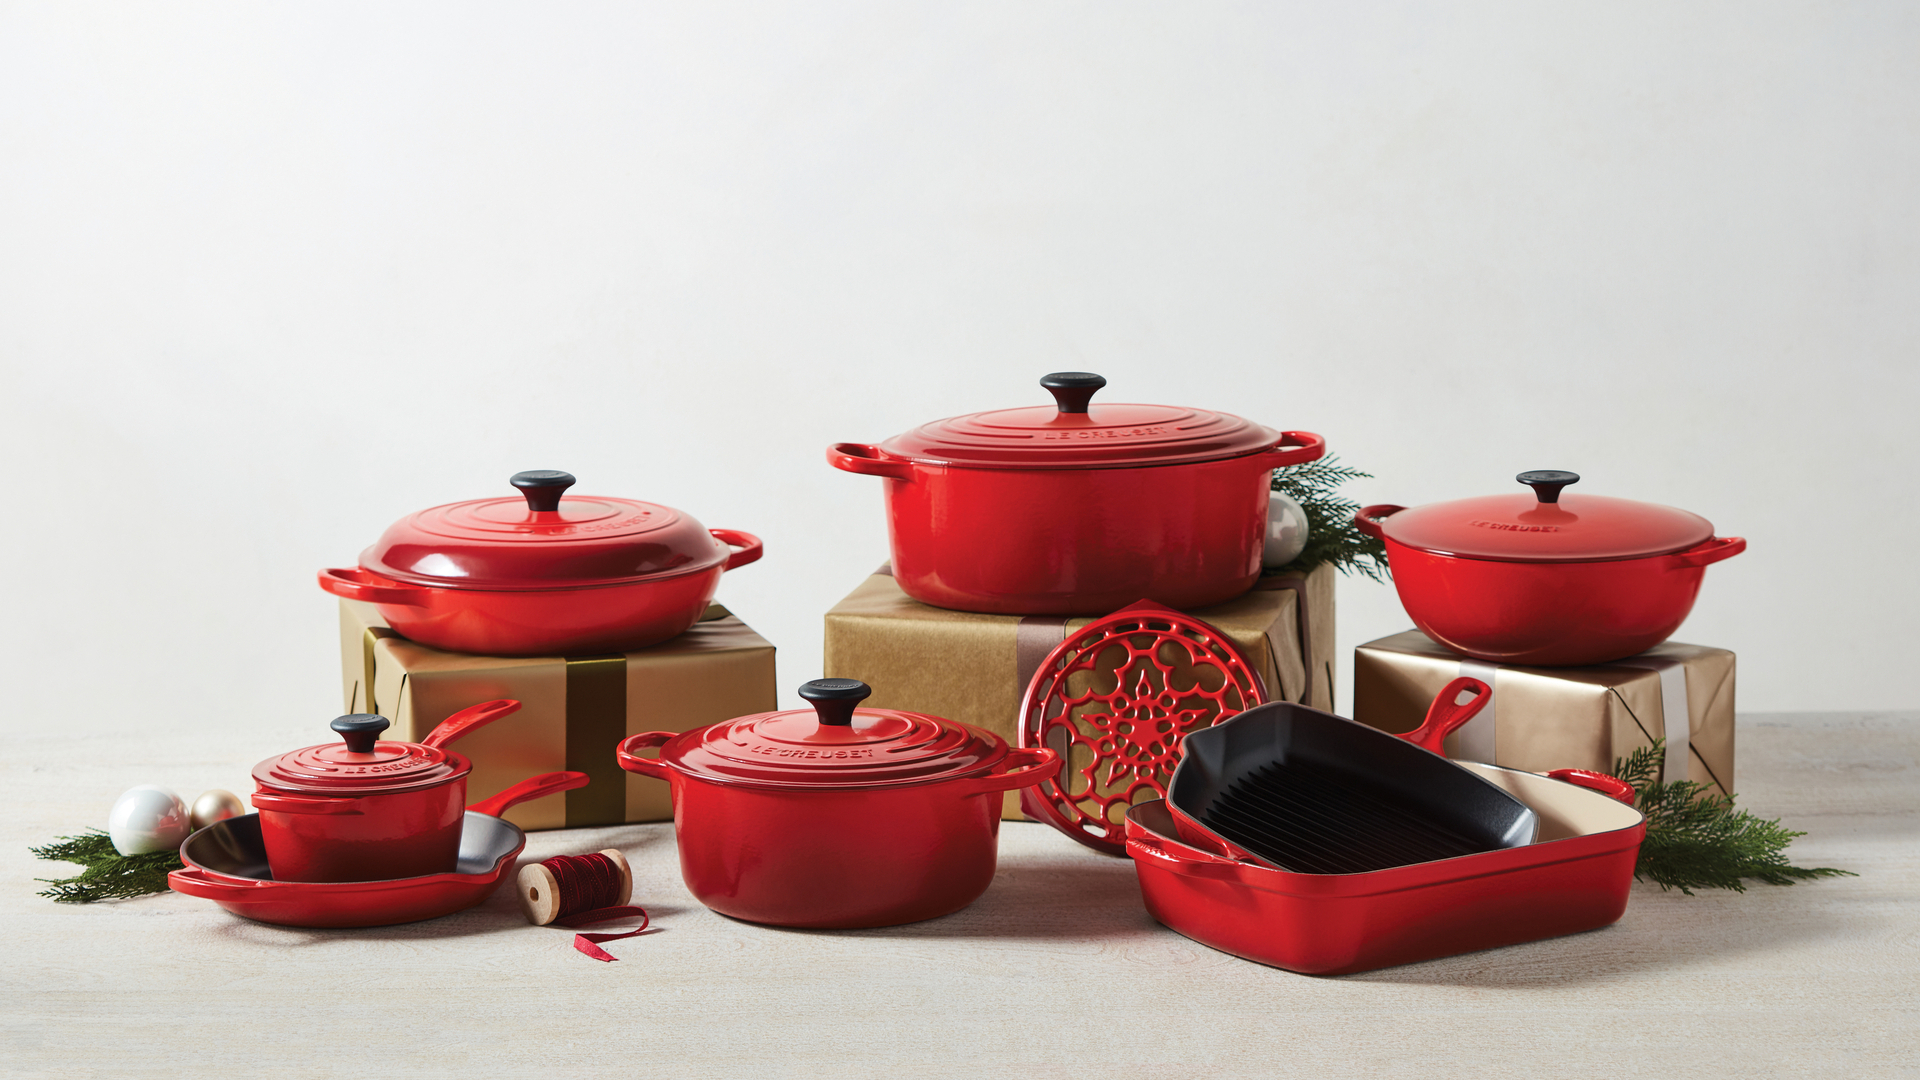 Le Creuset red cocottes